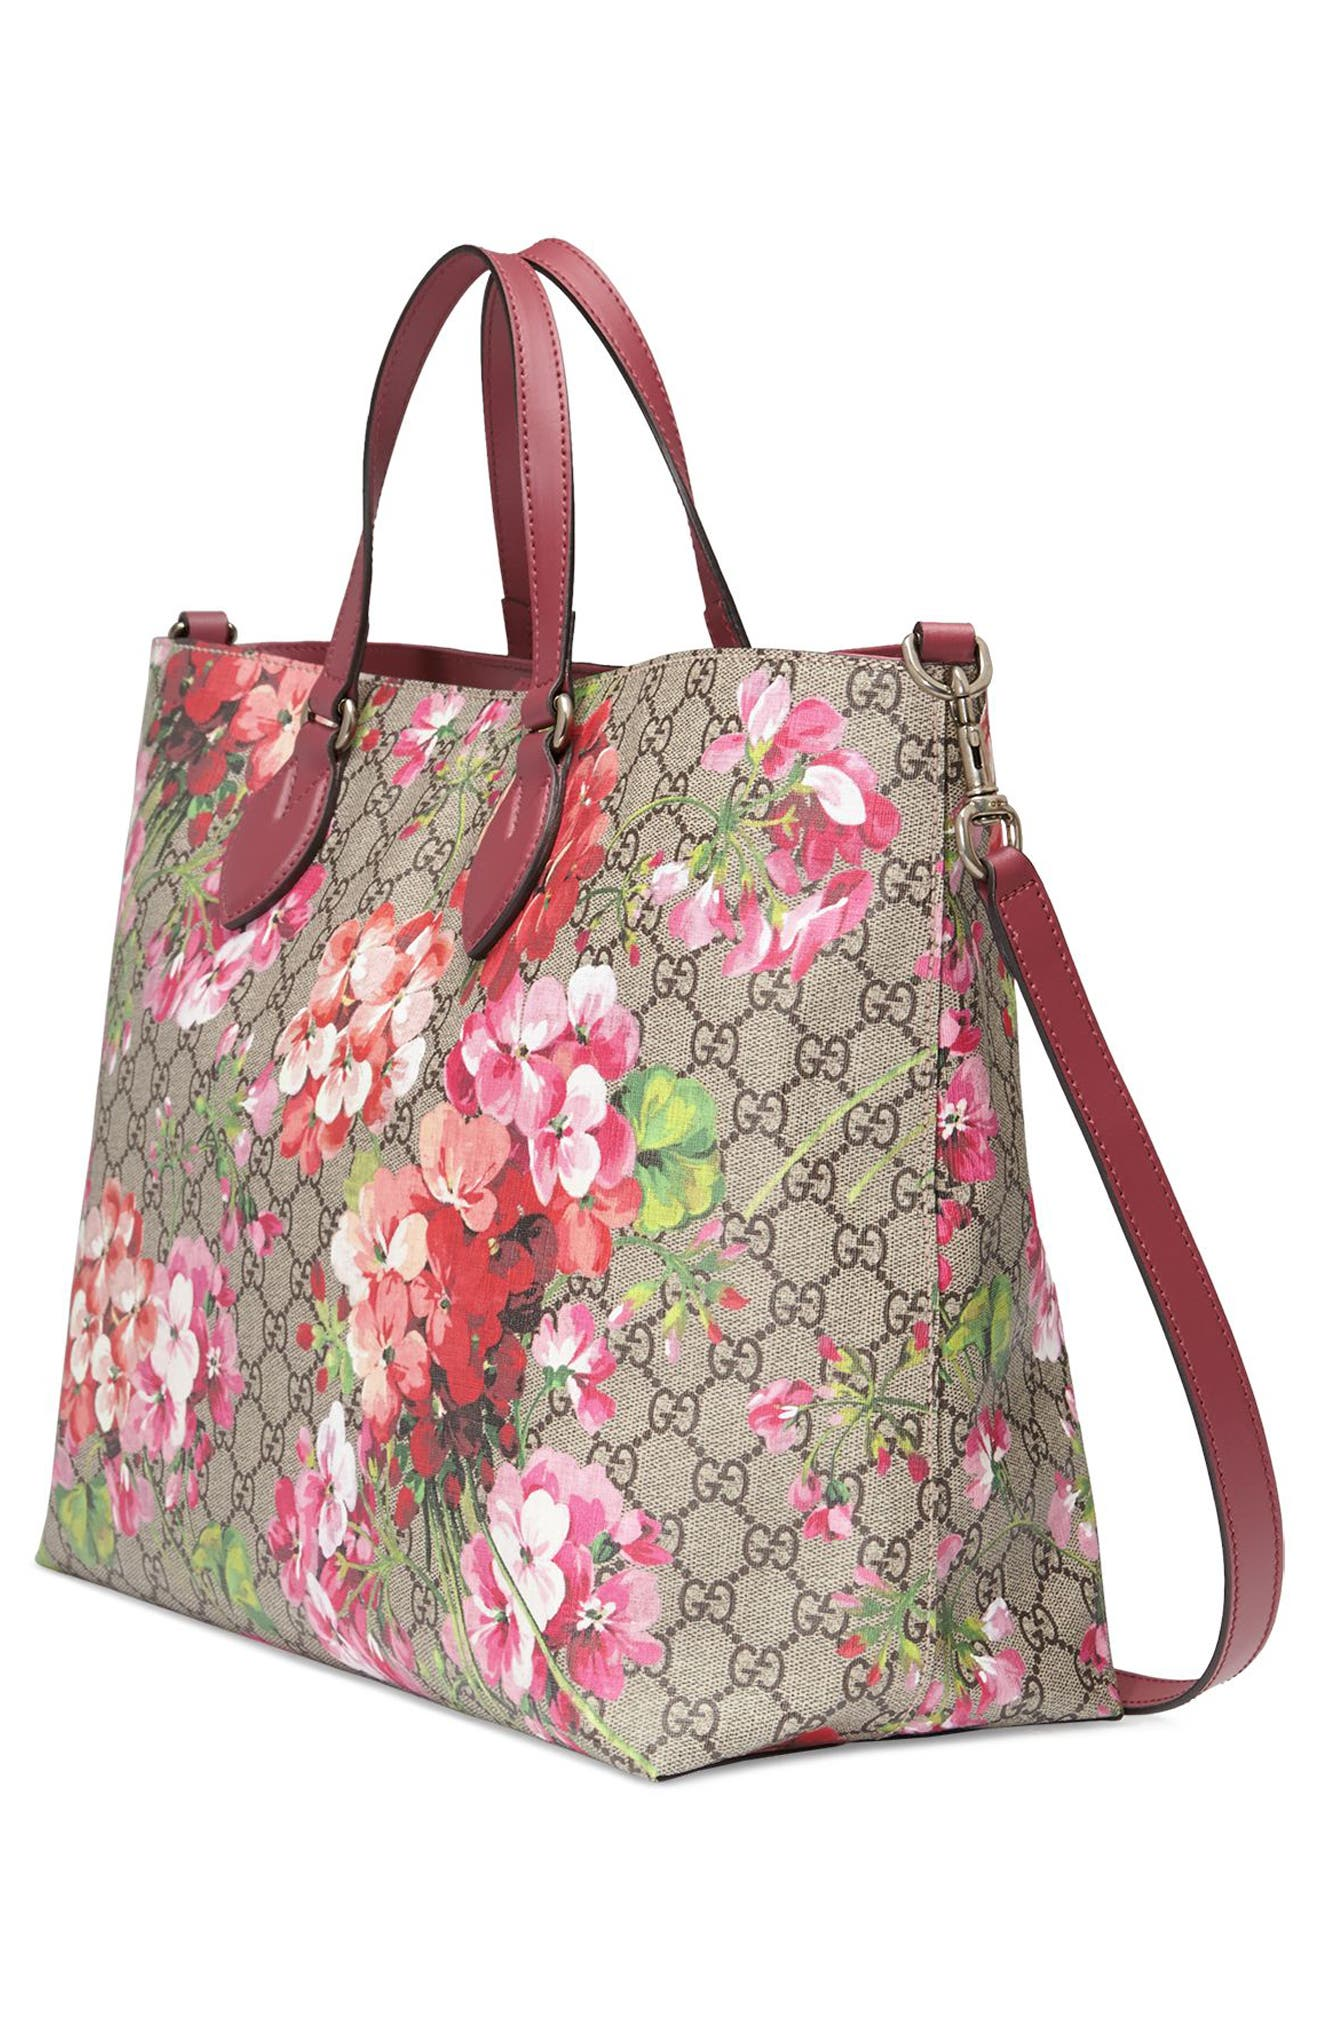 Soft GG Blooms Tote,                             Alternate thumbnail 4, color,                             Beige Ebony/Dry Rose